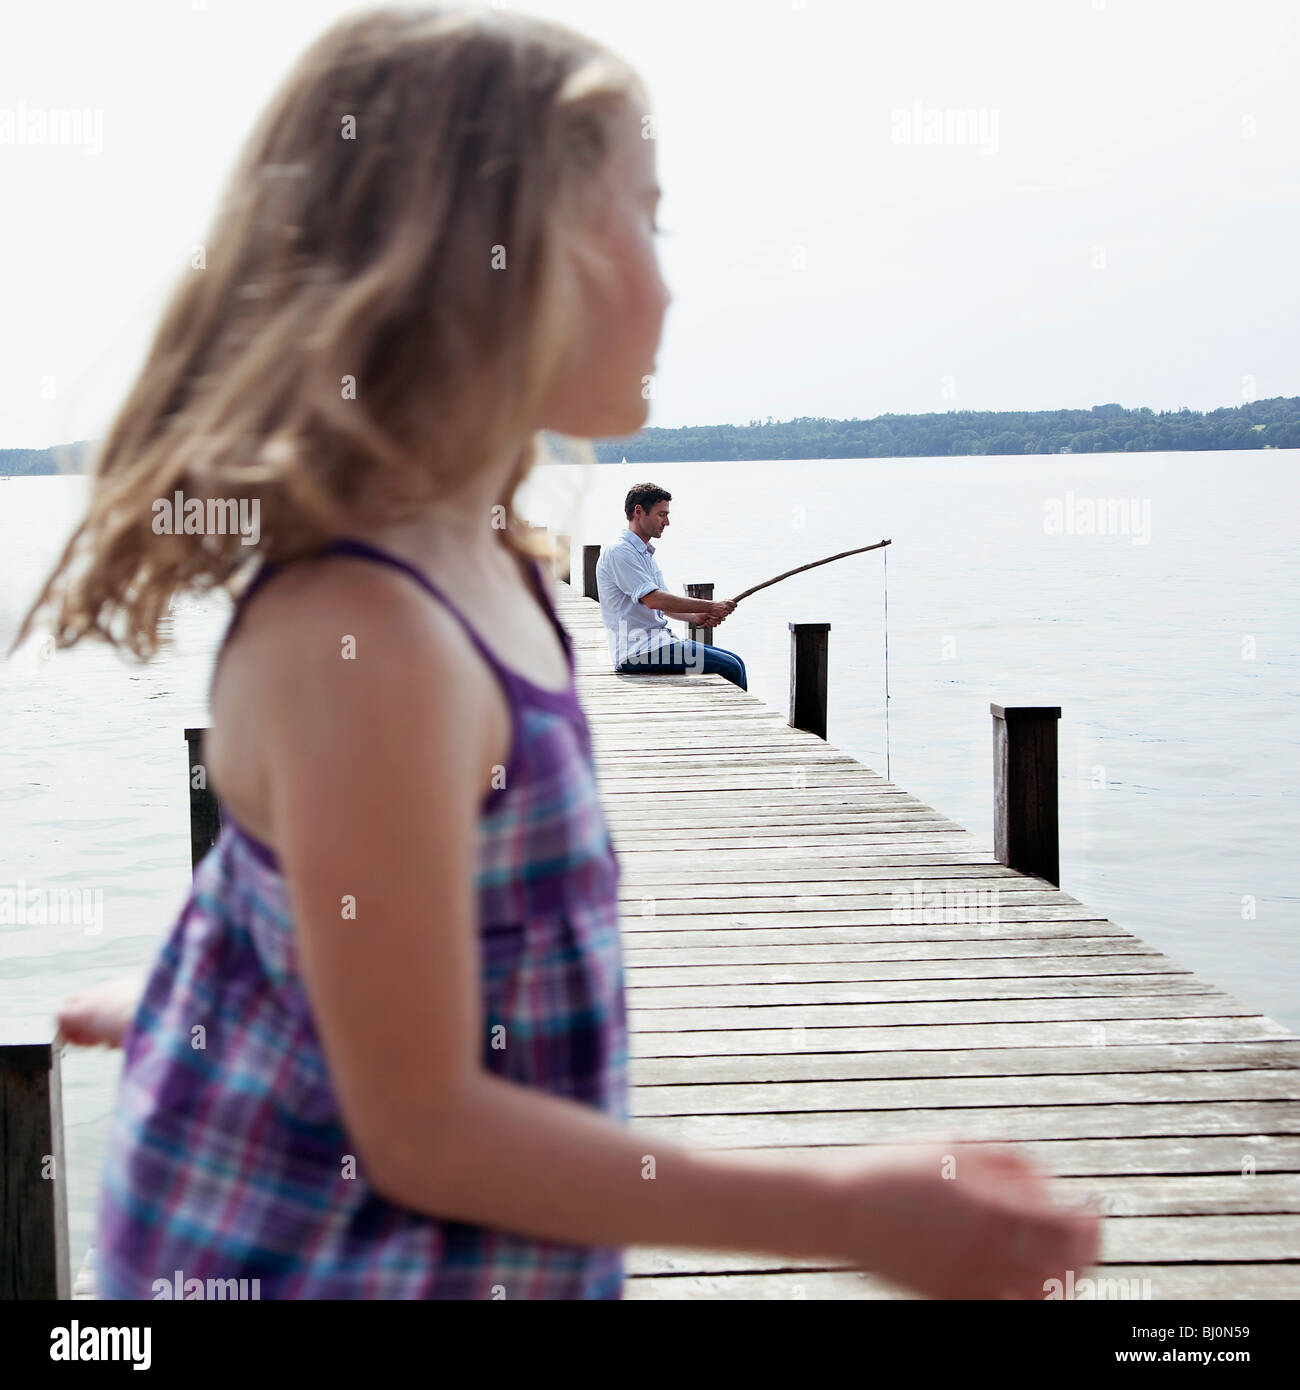 man angling on pier with young daughter in foreground - Stock Image